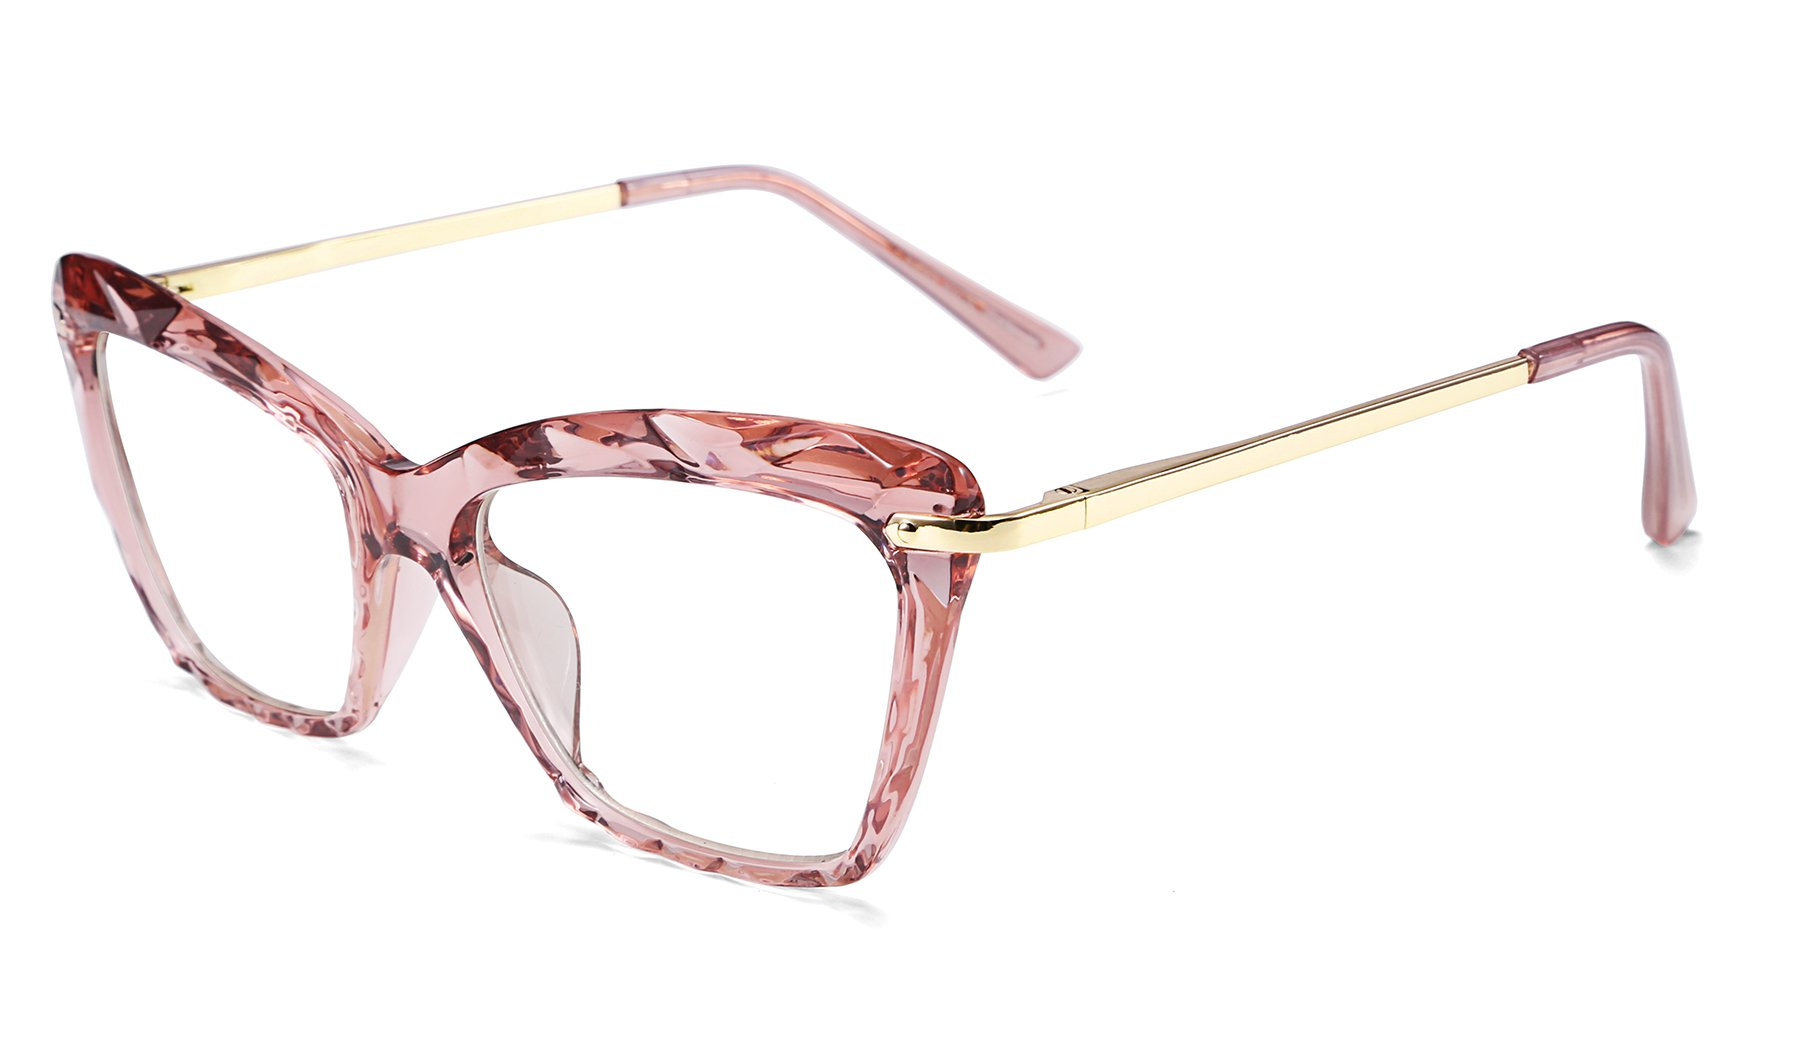 FEISEDY Cat Eye Crystal Optical Eyewear Non-prescription Eyeglasses Frame for Women B2440